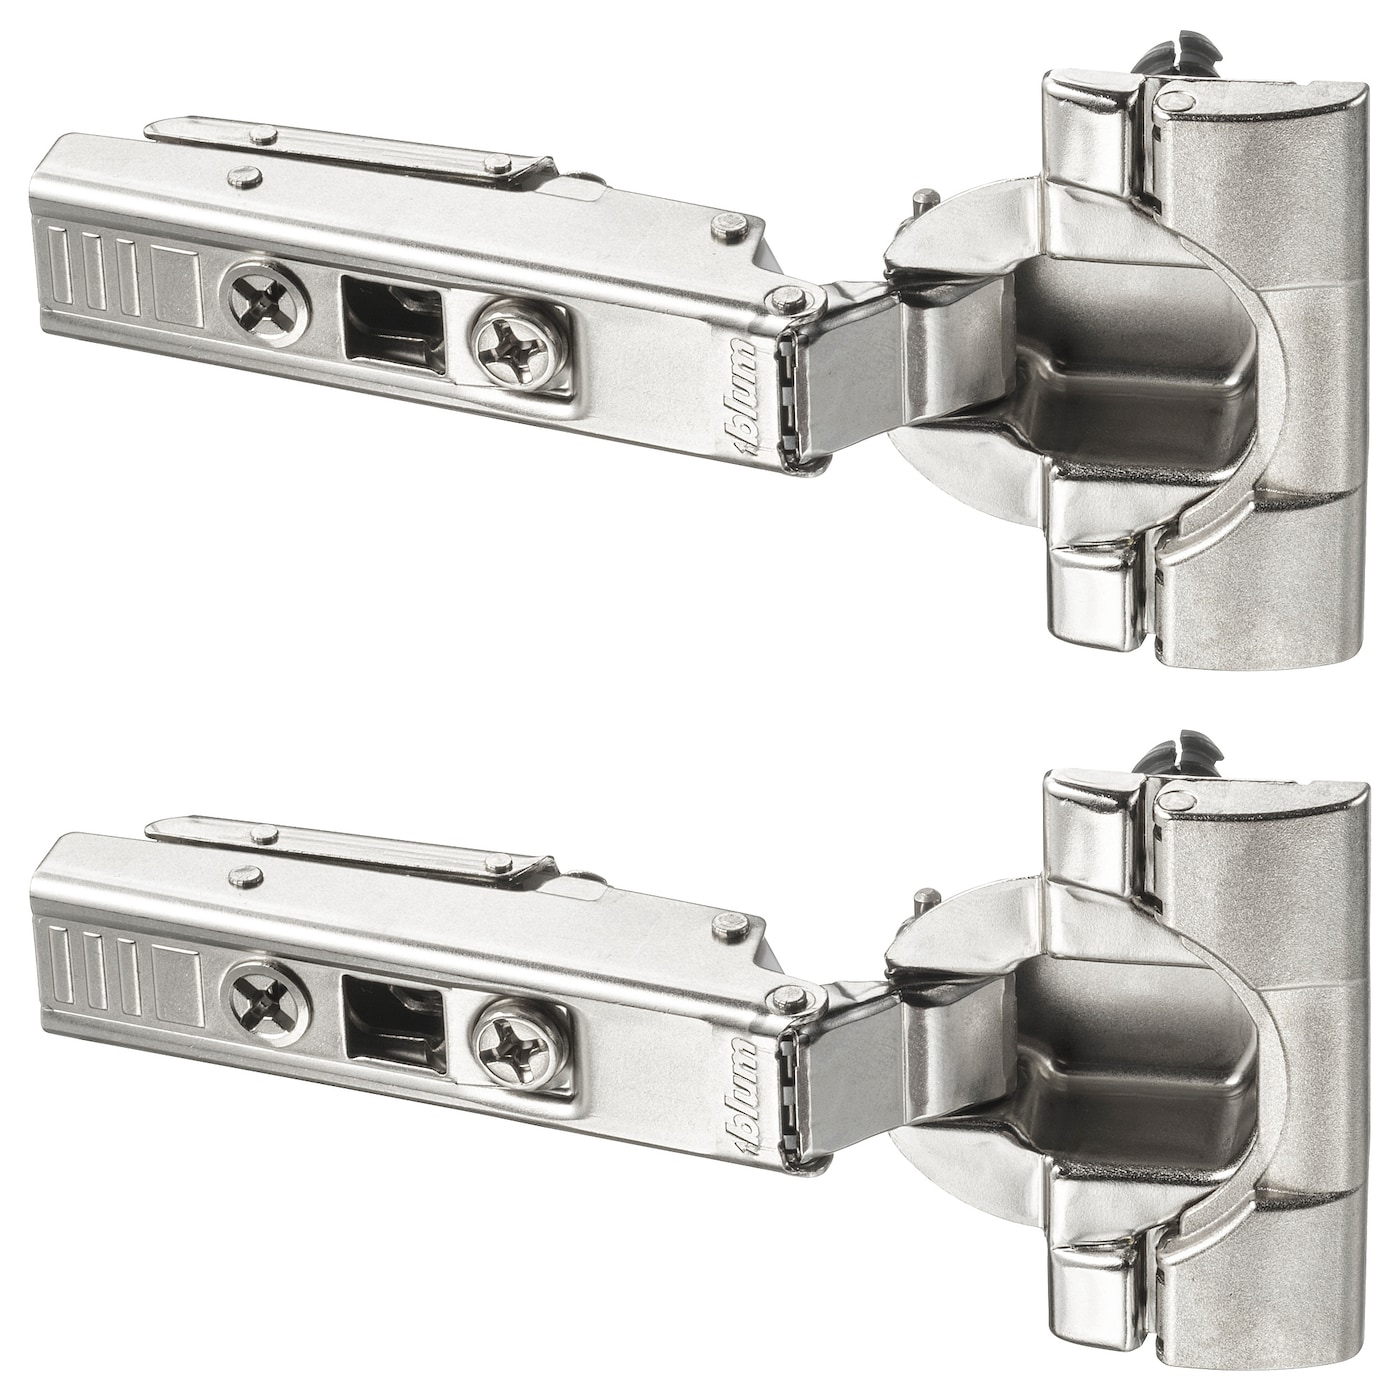 IKEA UTRUSTA hinge 25 year guarantee. Read about the terms in the guarantee brochure.